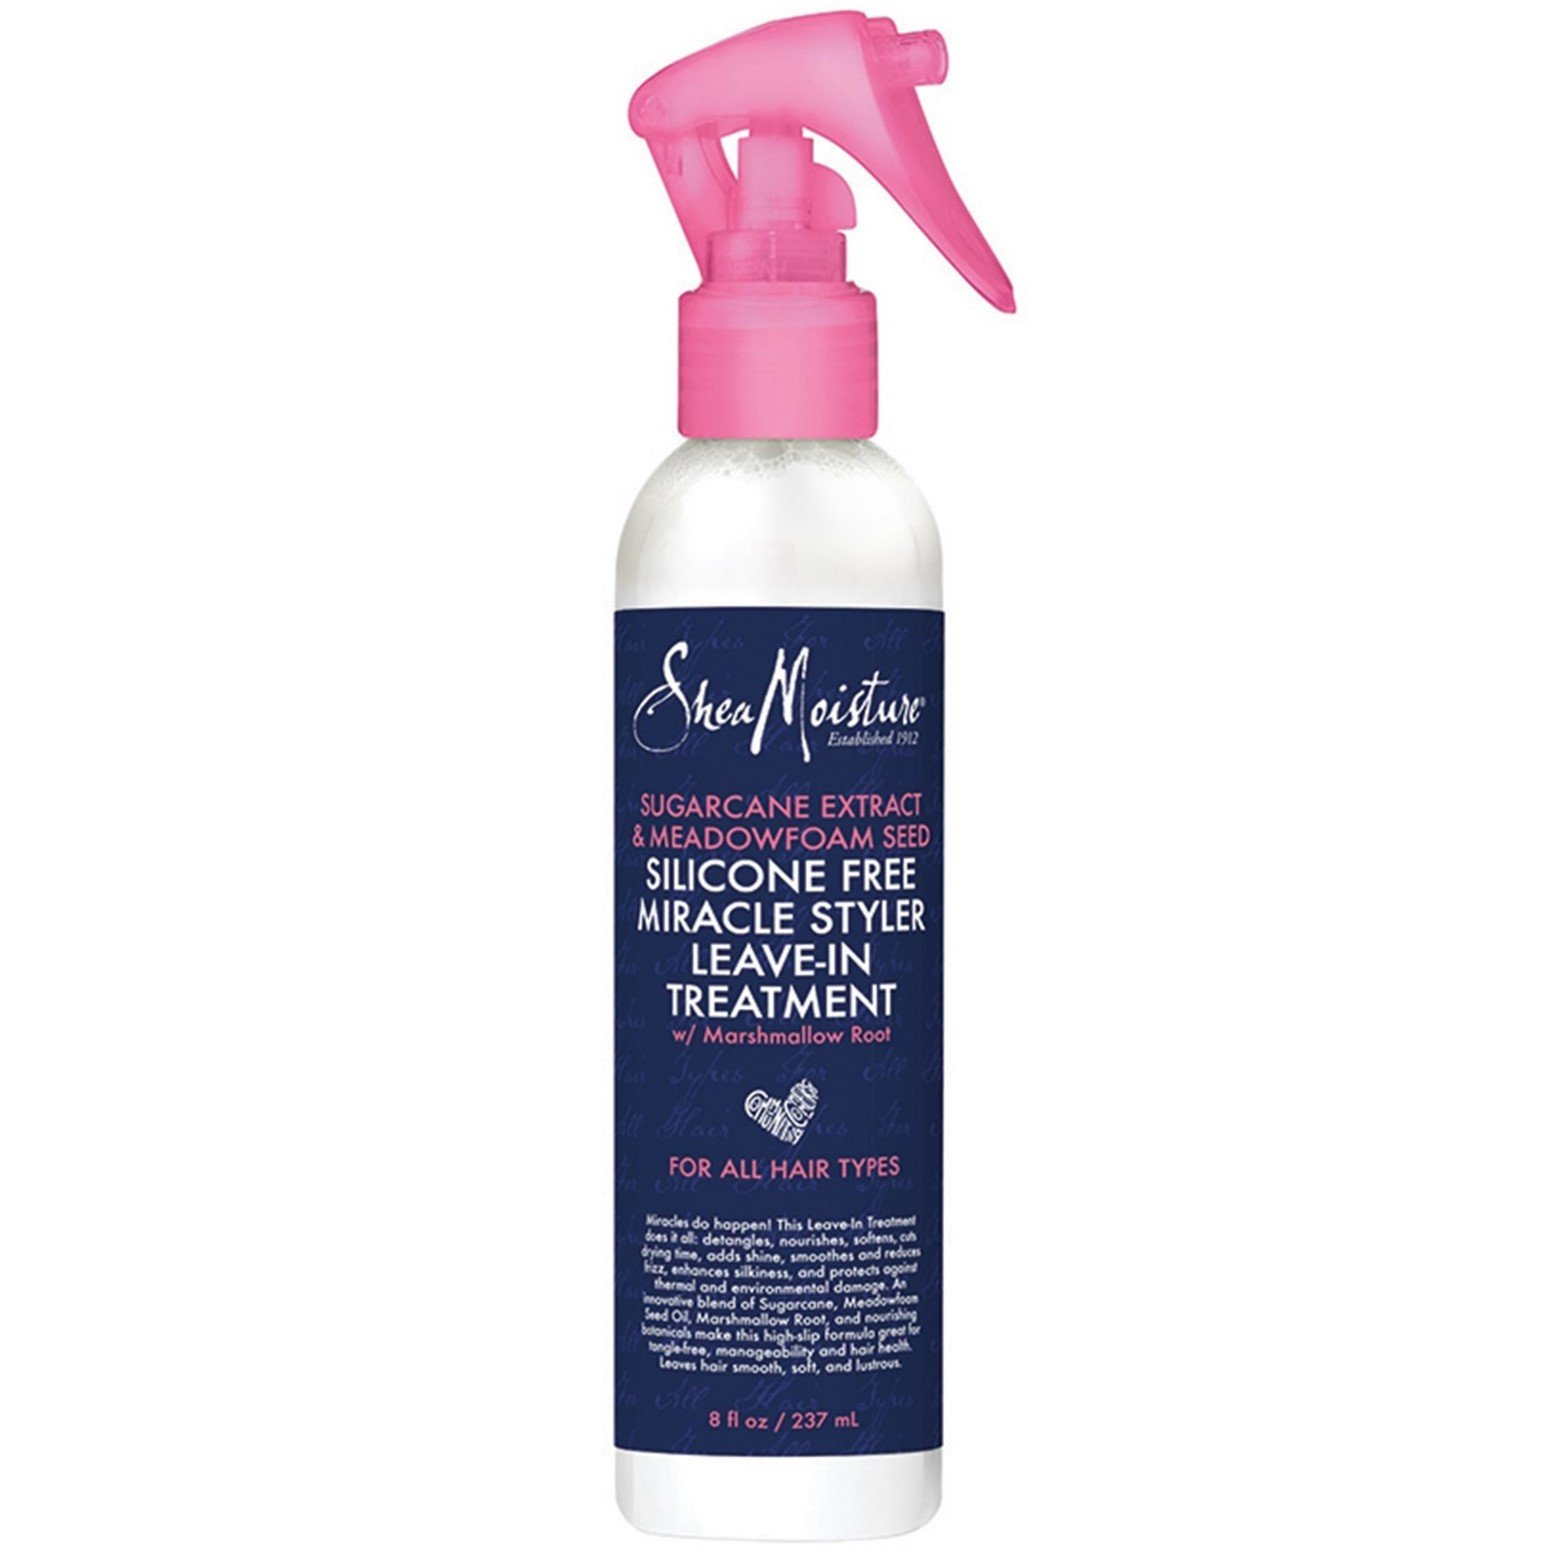 Shea Moisture Silicone Free Miracle Styler Leave-In Treatment - 8 fl oz by Shea Moisture (Image #1)